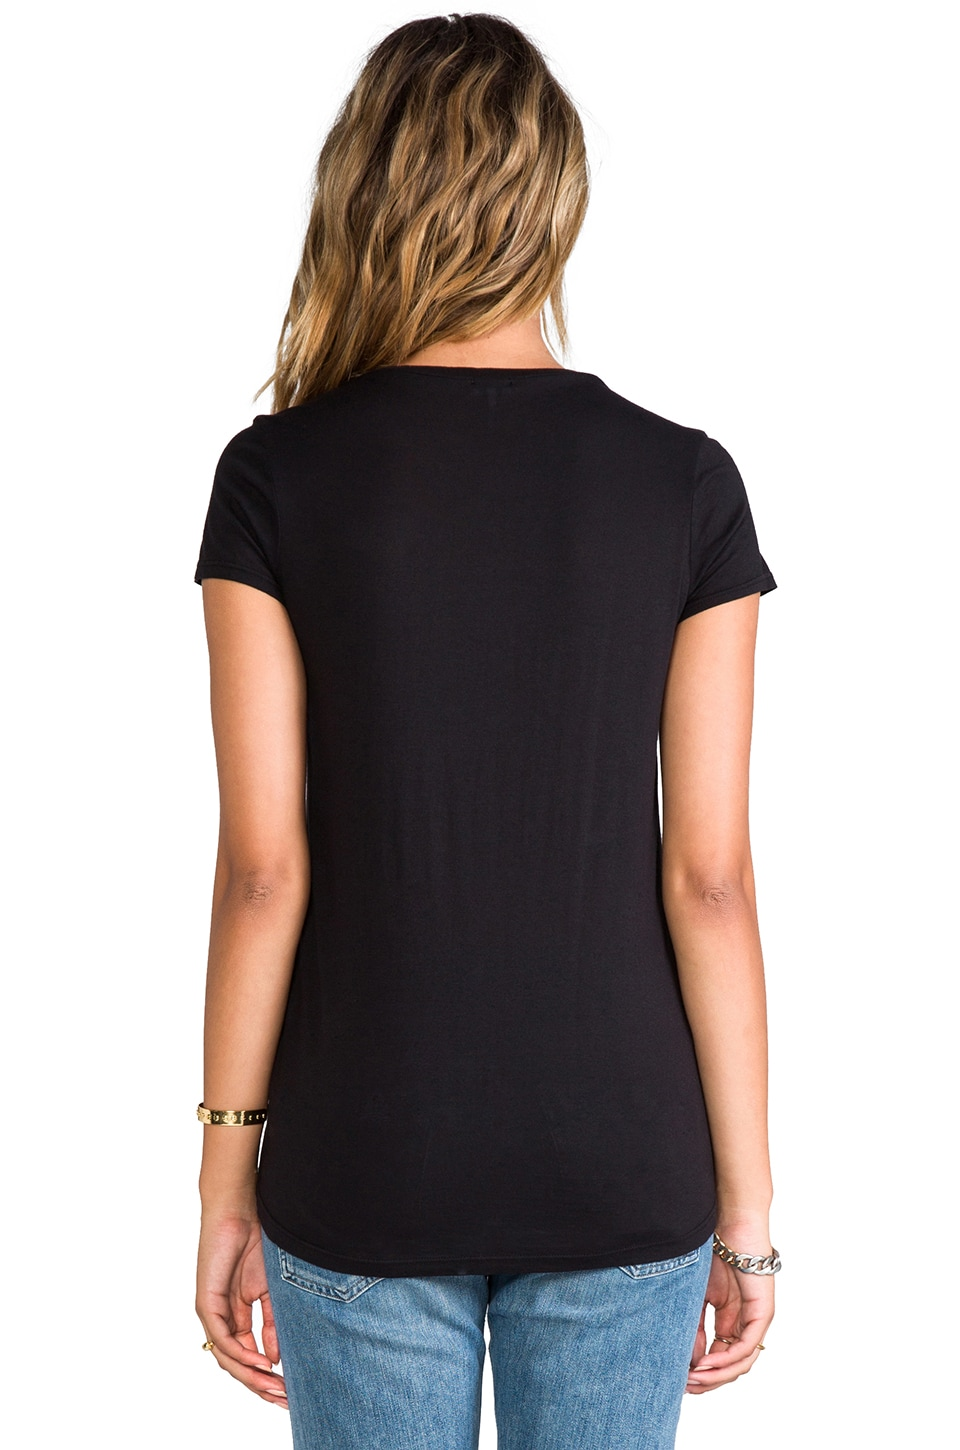 Splendid Very Light Jersey Tee in Black